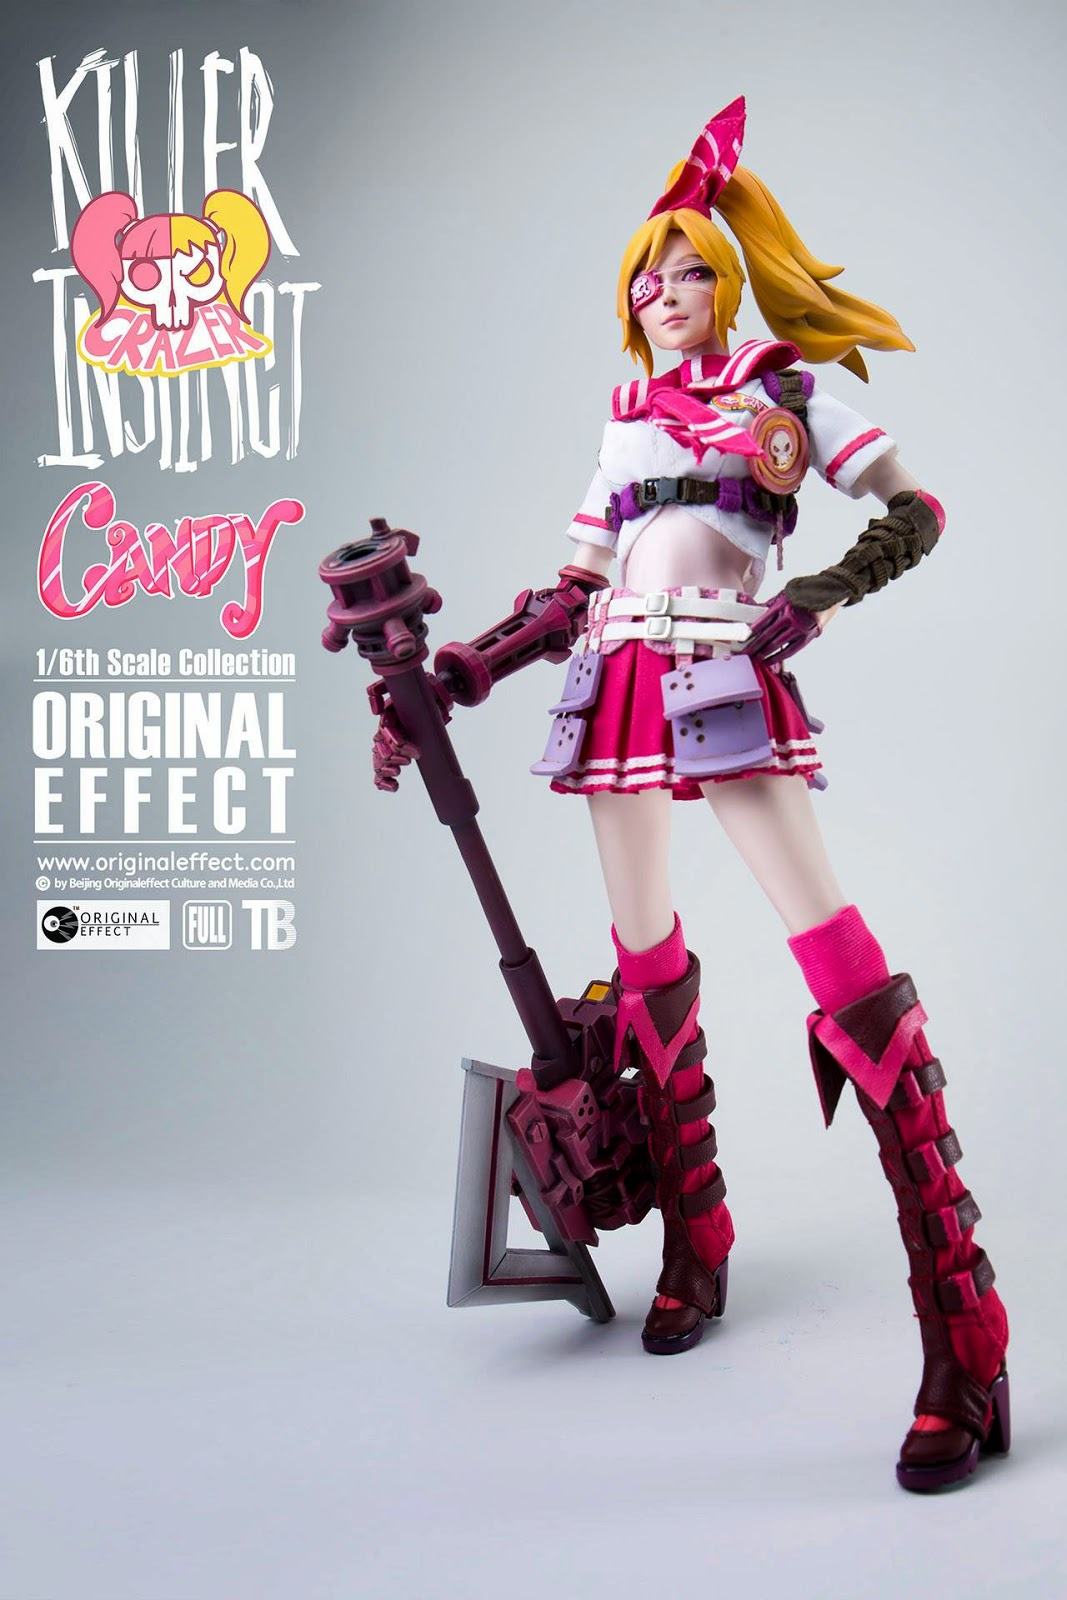 toyhaven: Incoming: OE (Original Effect) 1/6 scale Army